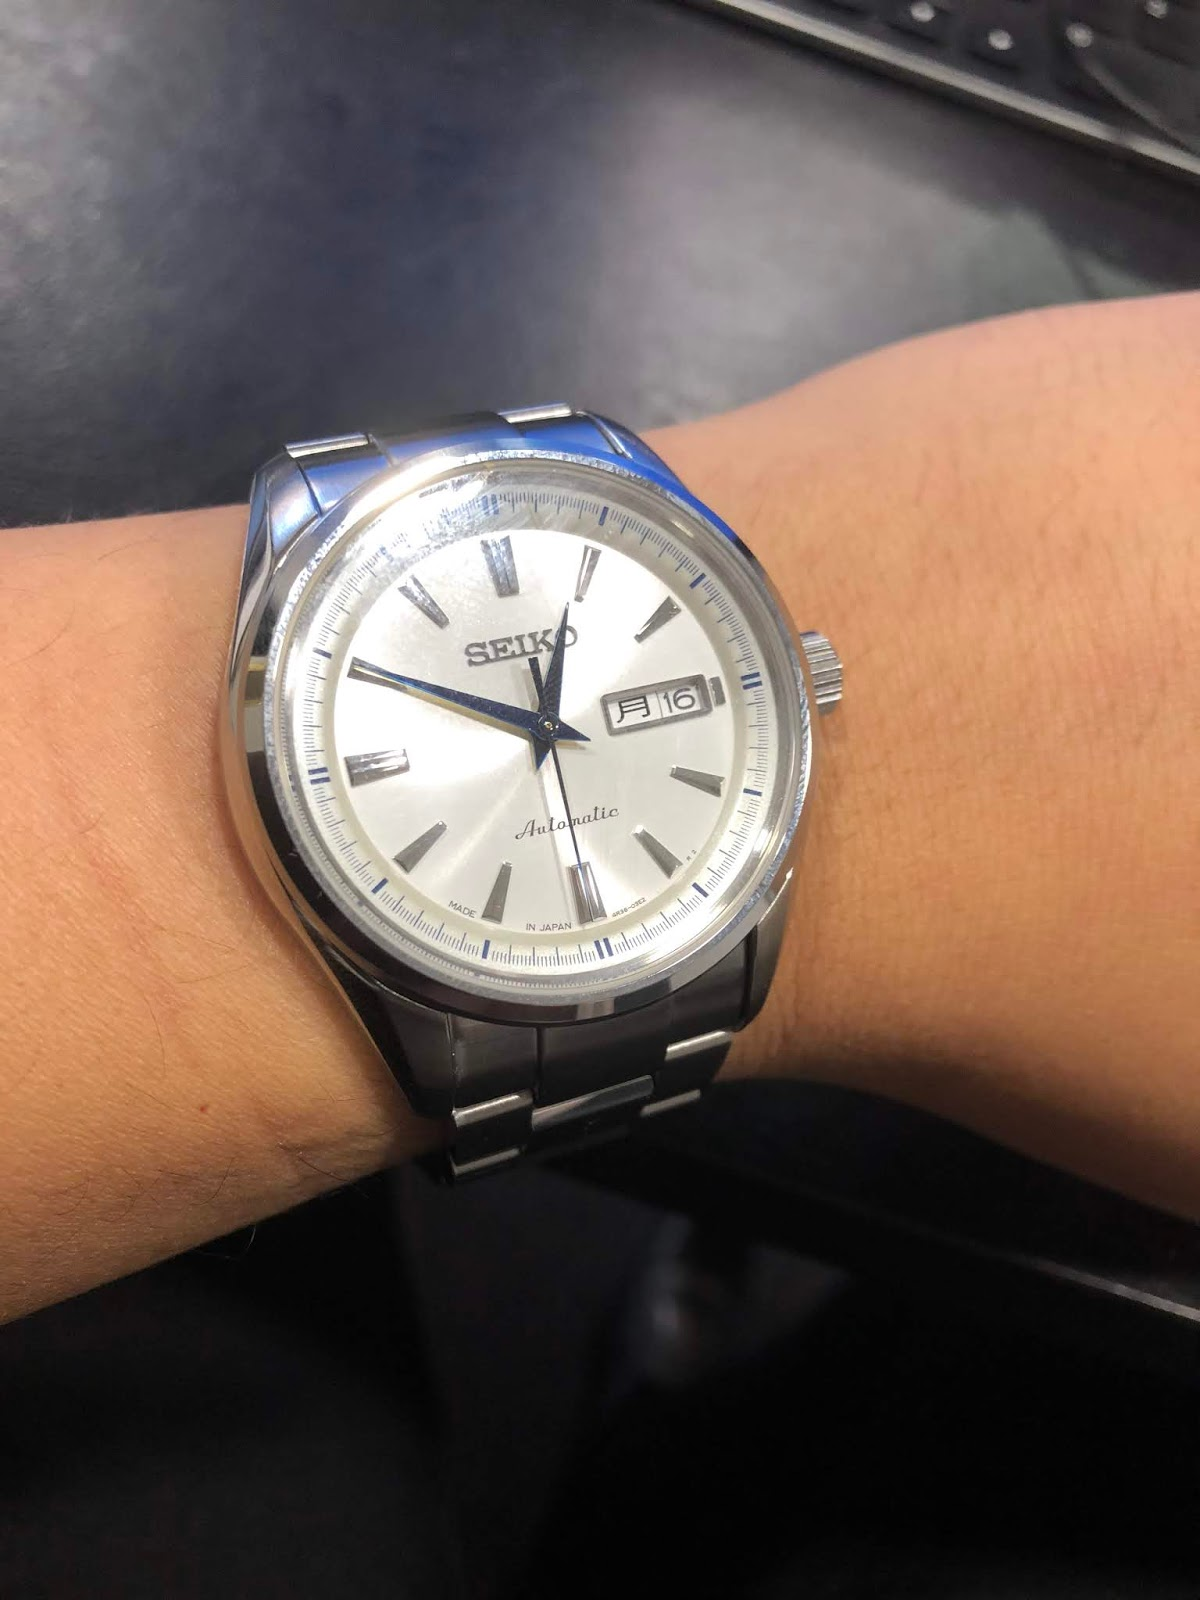 9c26542868768 In the last few watch acquisitions